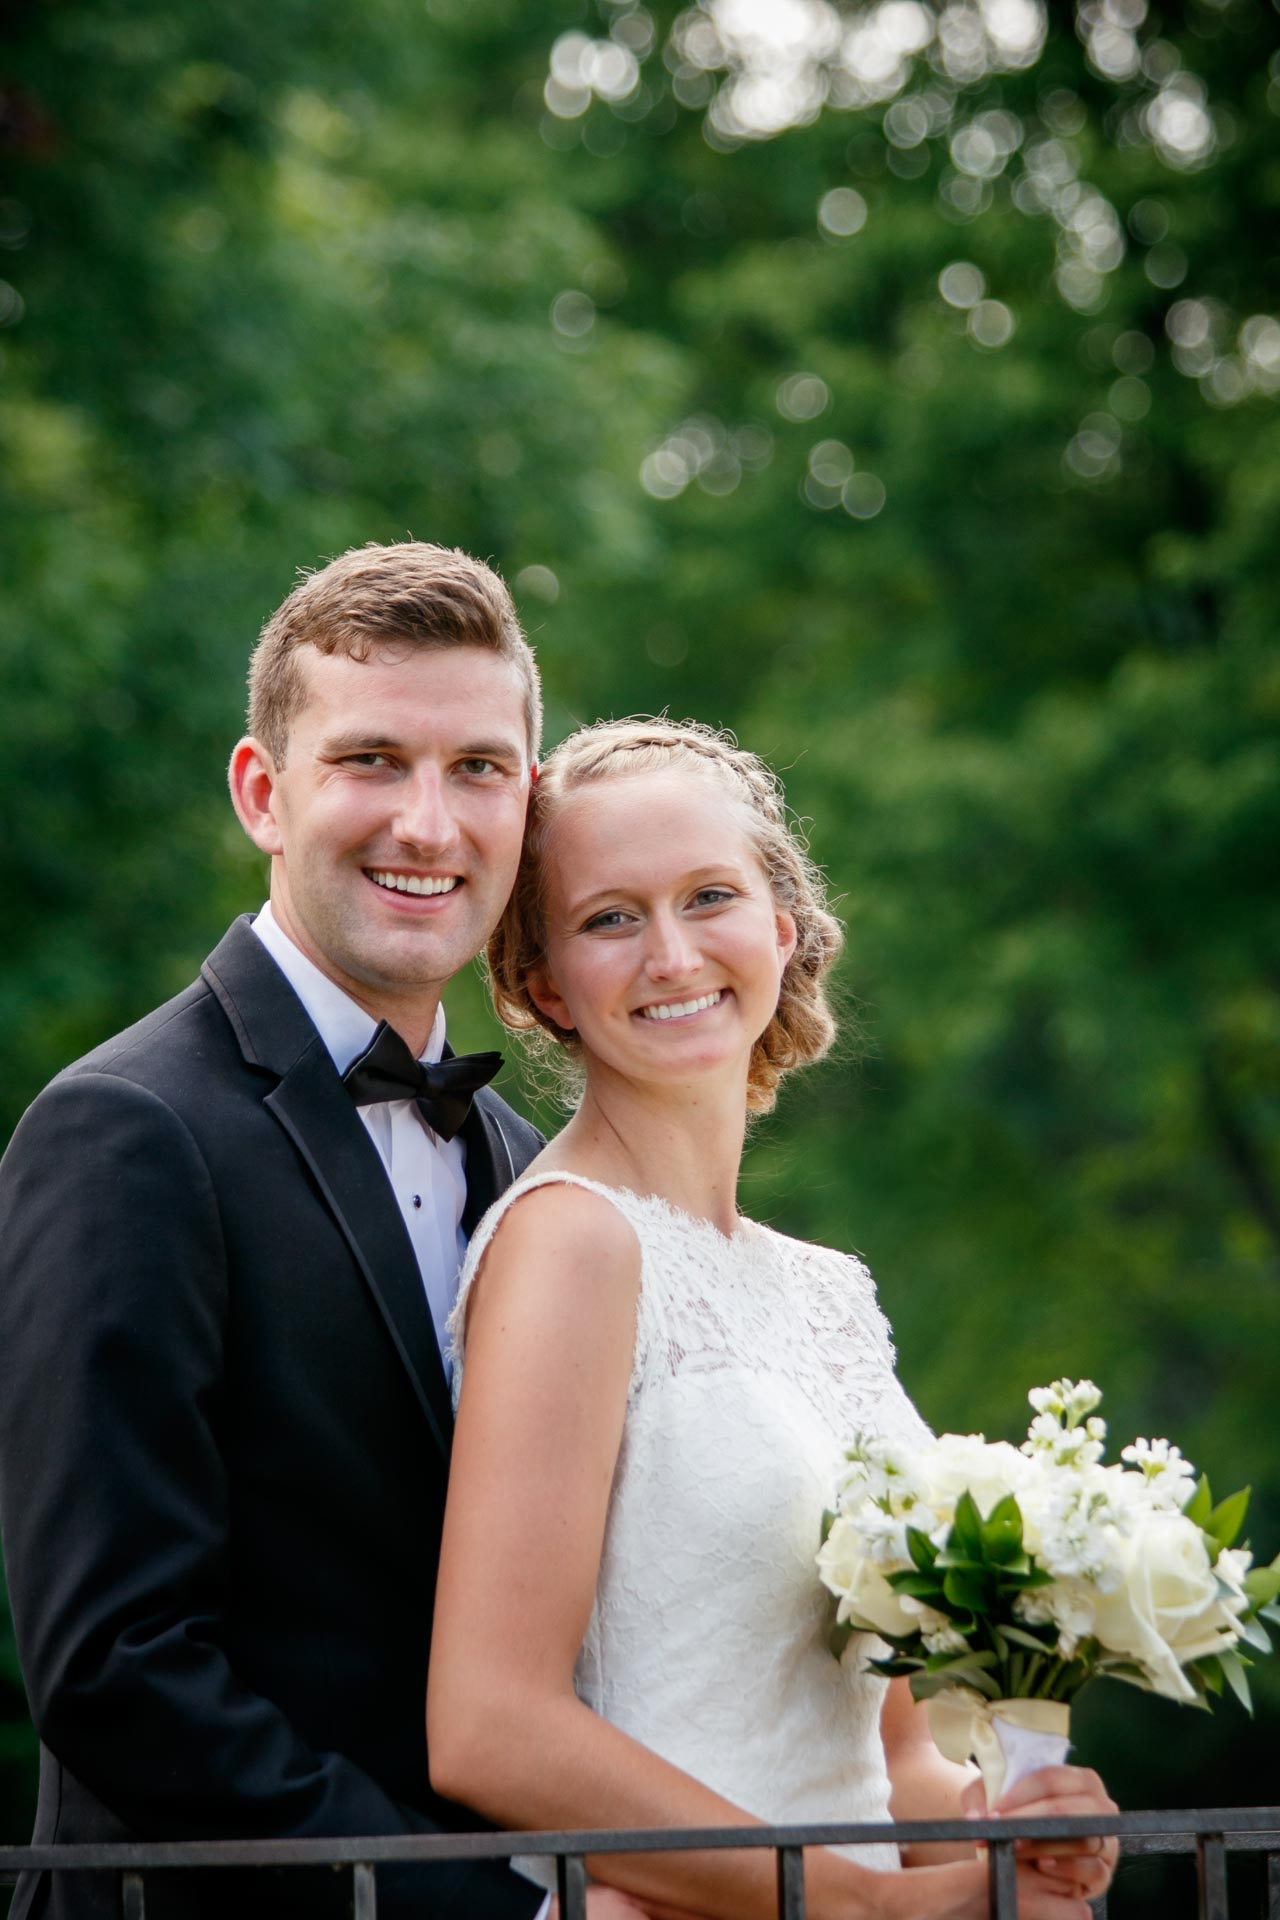 smith-park-menasha-wedding-adam-shea-photography-green-bay-appleton-neenah-photographer-32.jpg